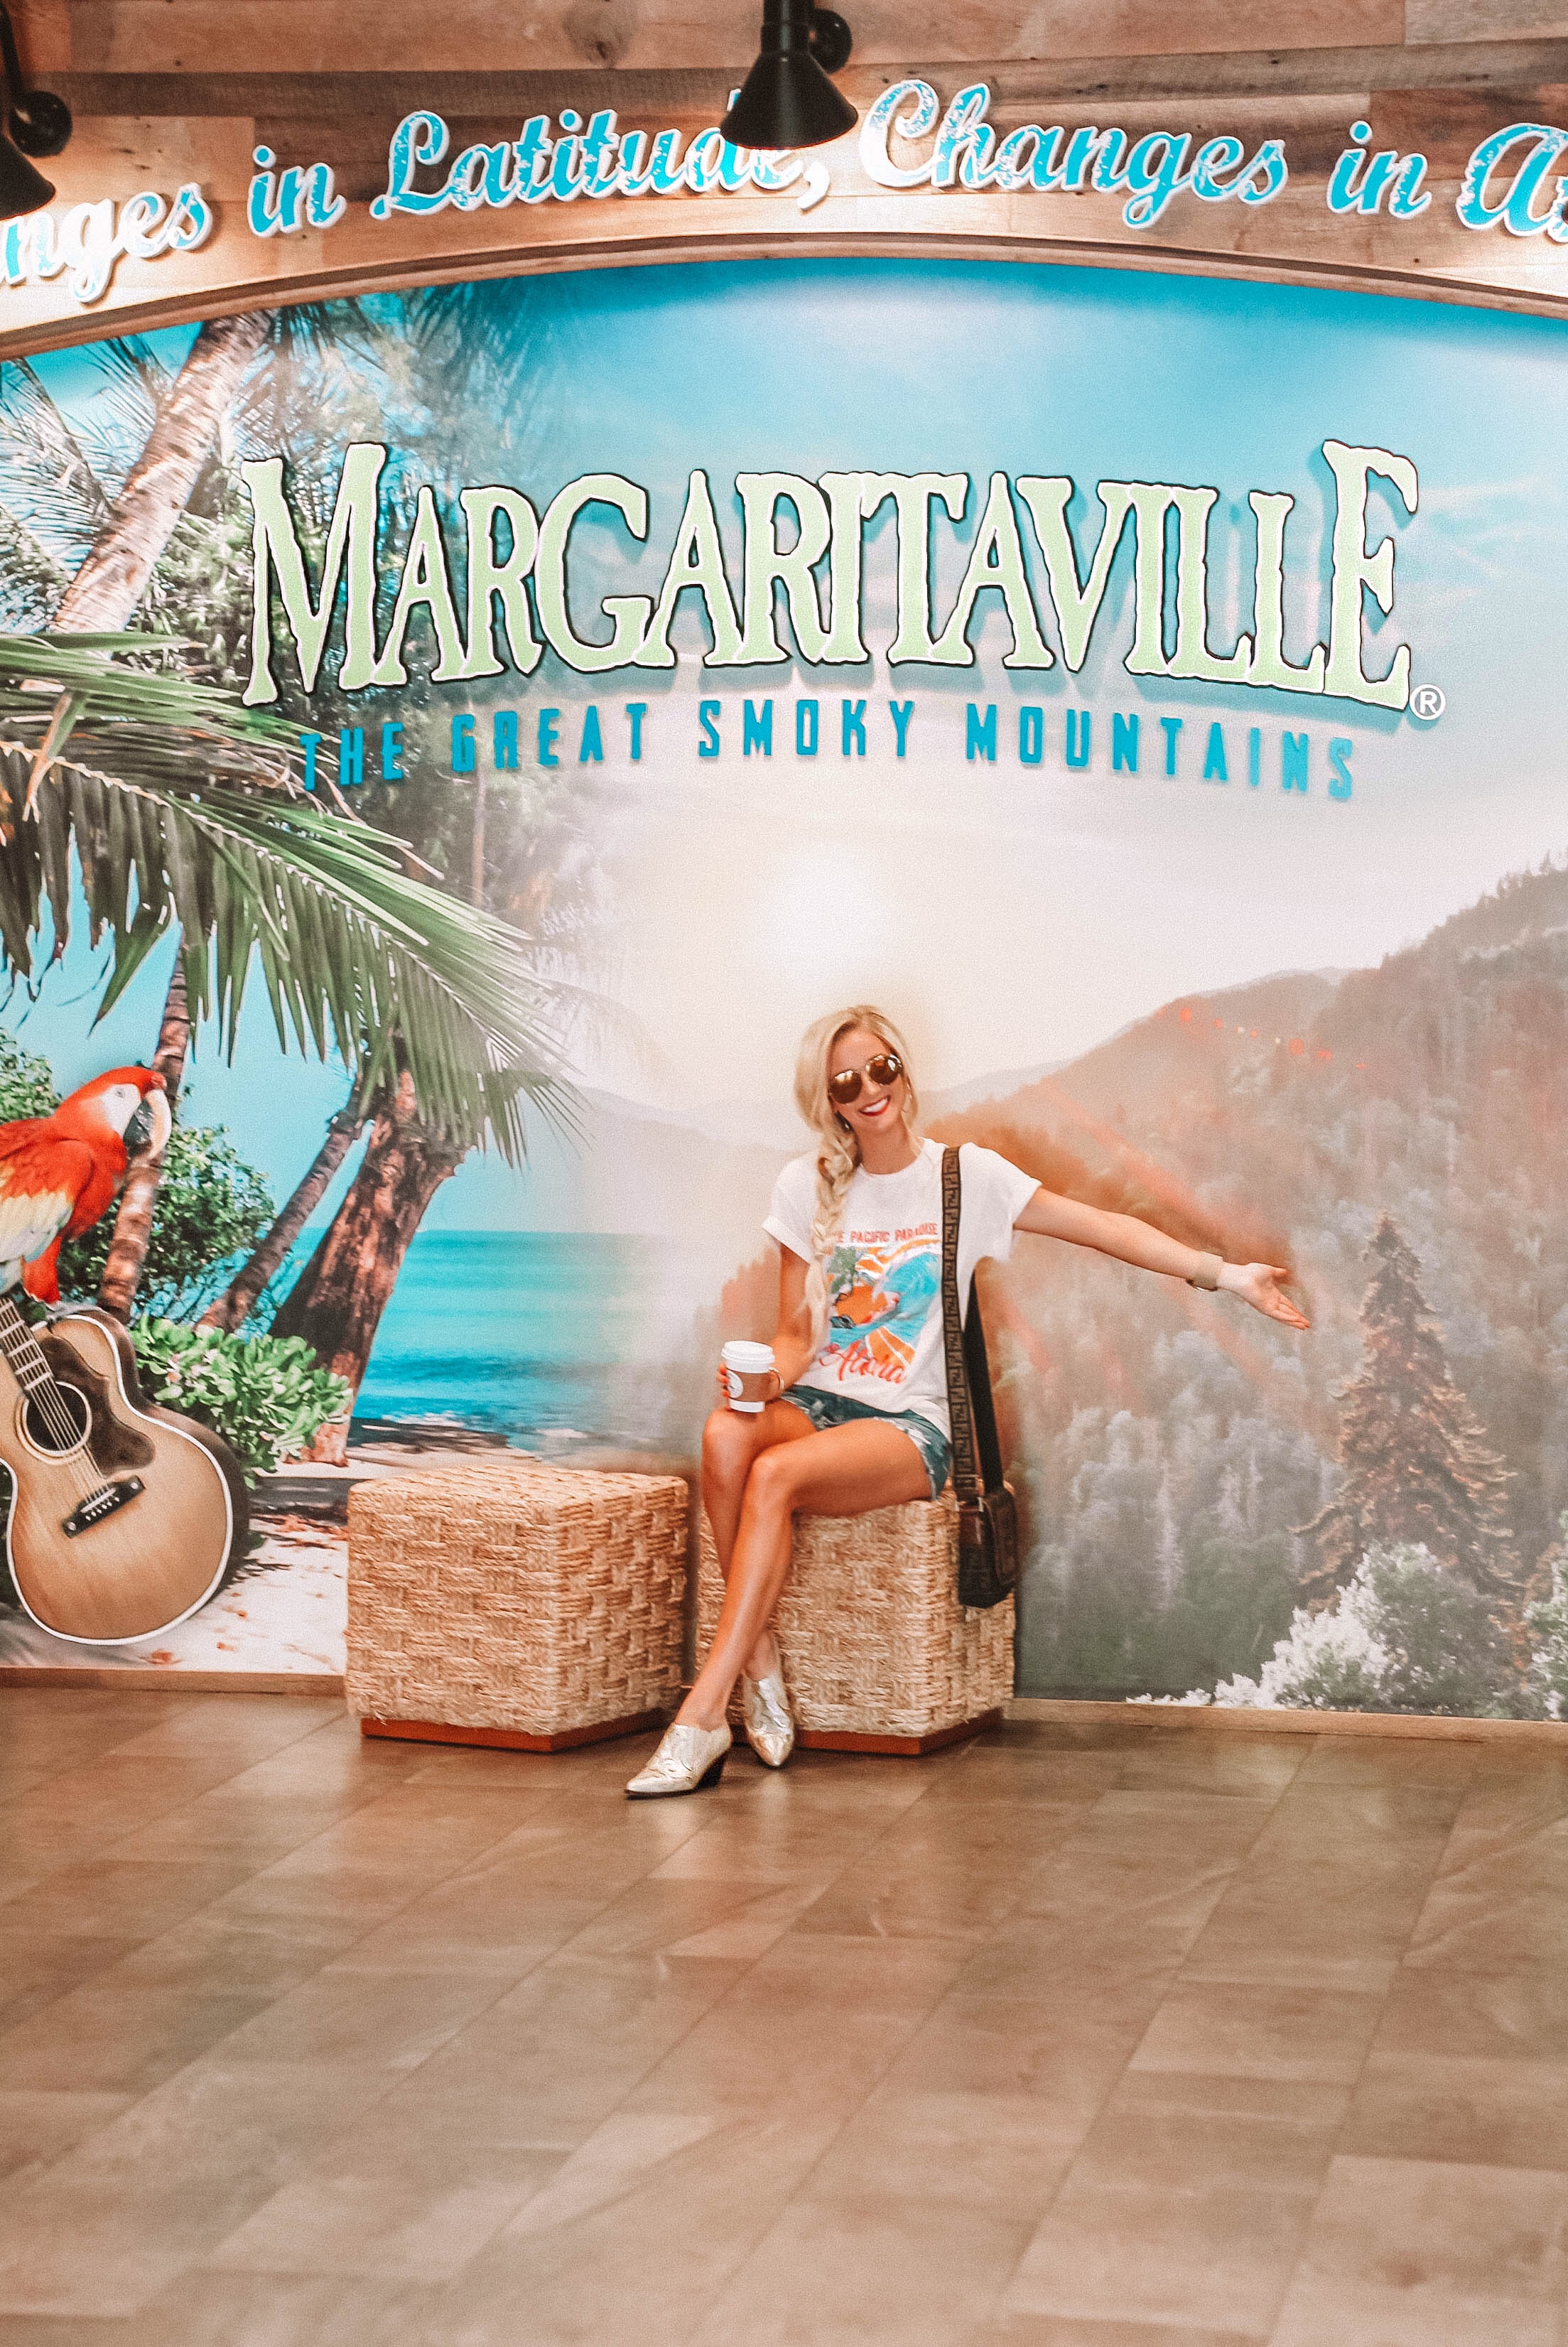 Weekend Staycation at Margaritaville Island Hotel | love 'n' labels www.lovenlabels.com